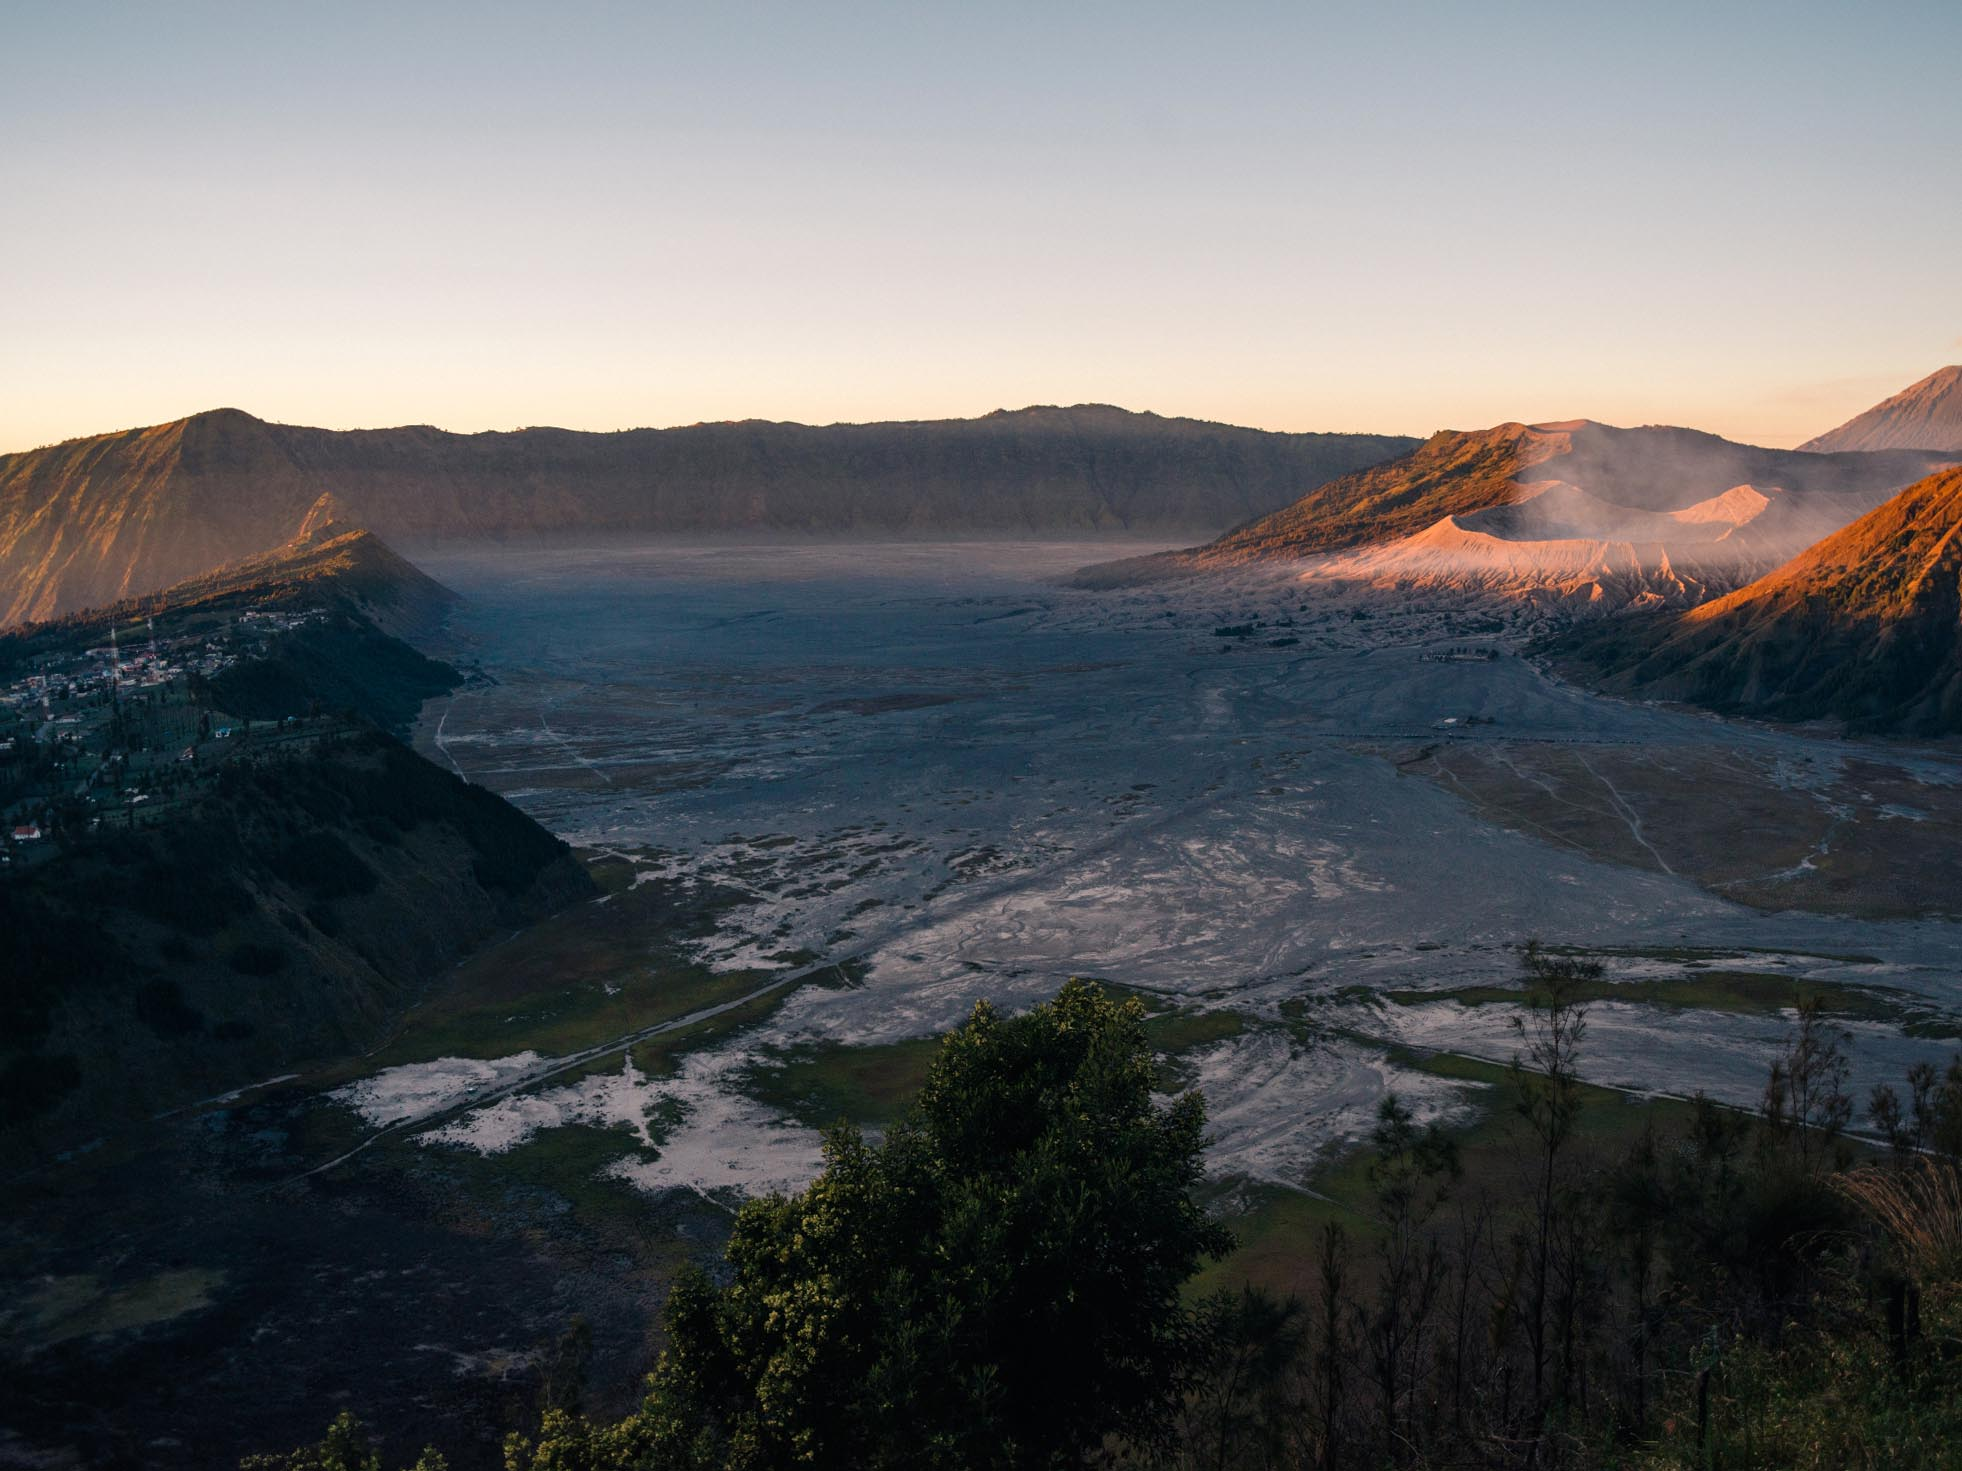 The main caldera and the Sea of Sand. The sun hits Mount Bromo on the right.